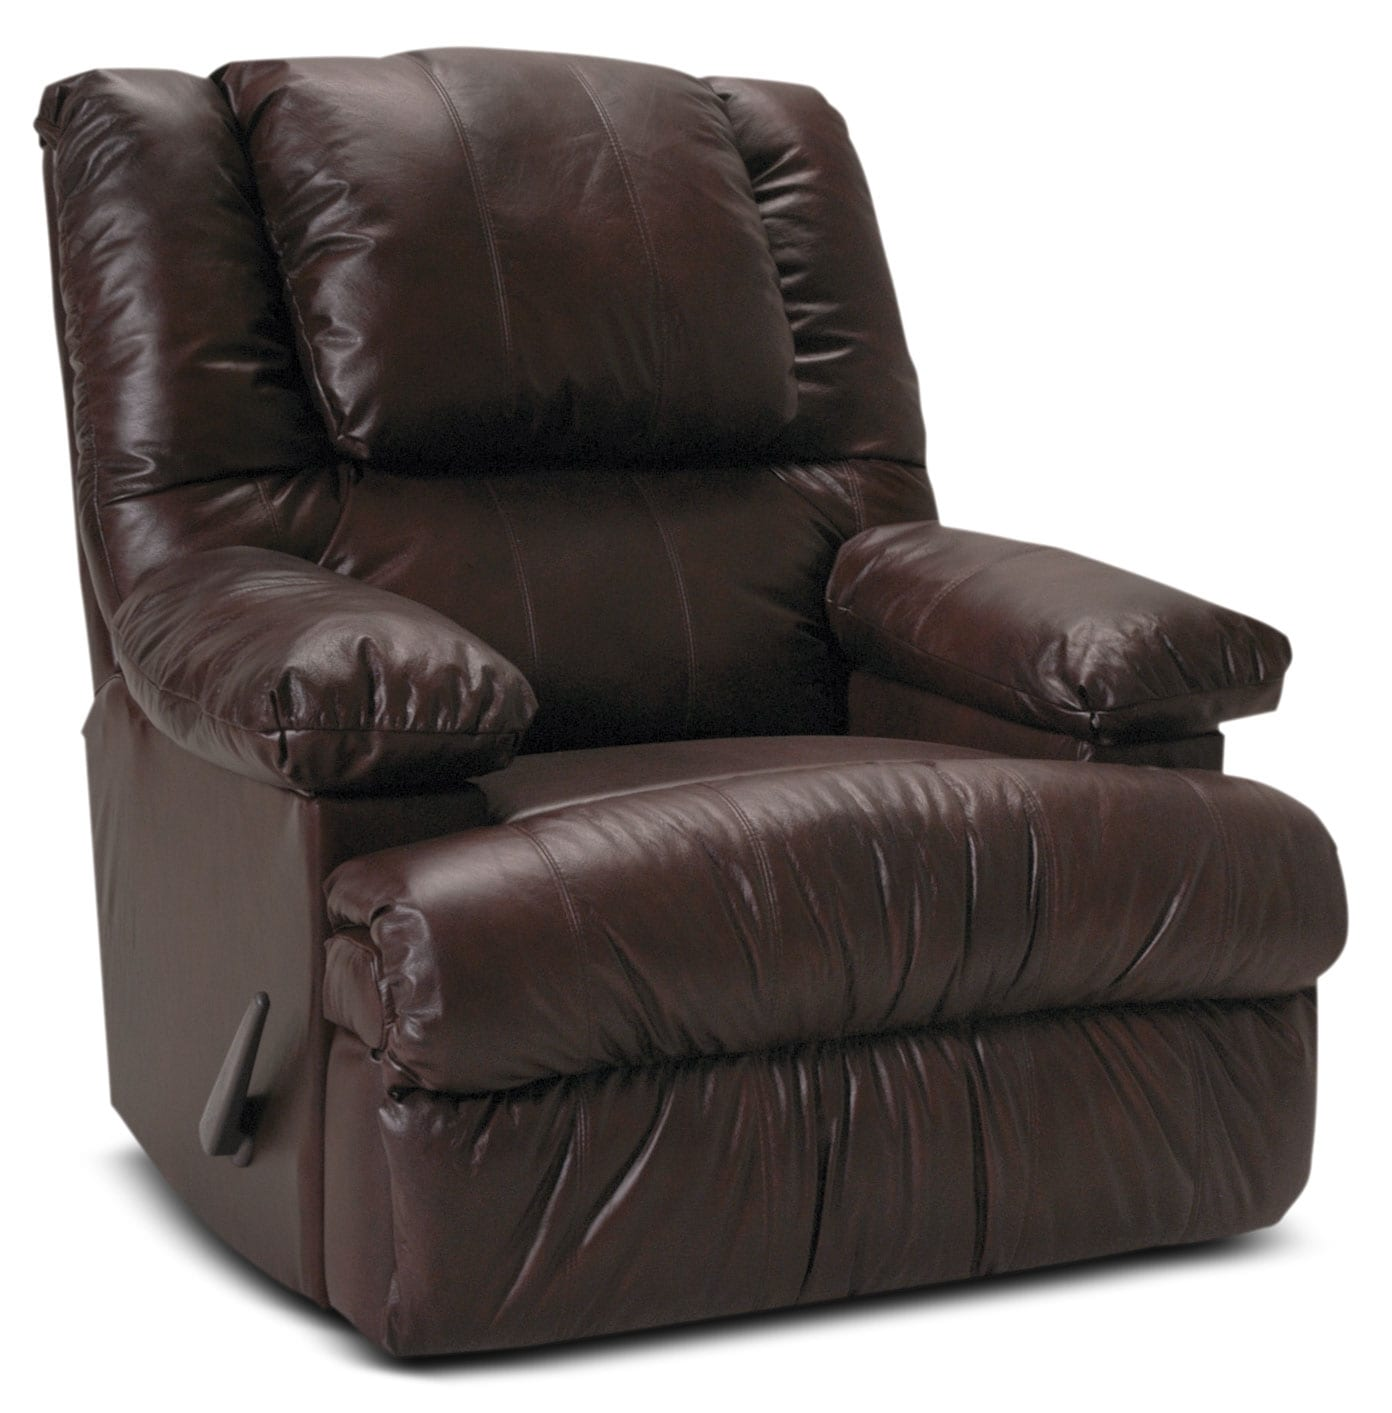 Living Room Furniture - Designed2B Recliner 5598 Bonded Leather Rocker with Storage Arms- Java